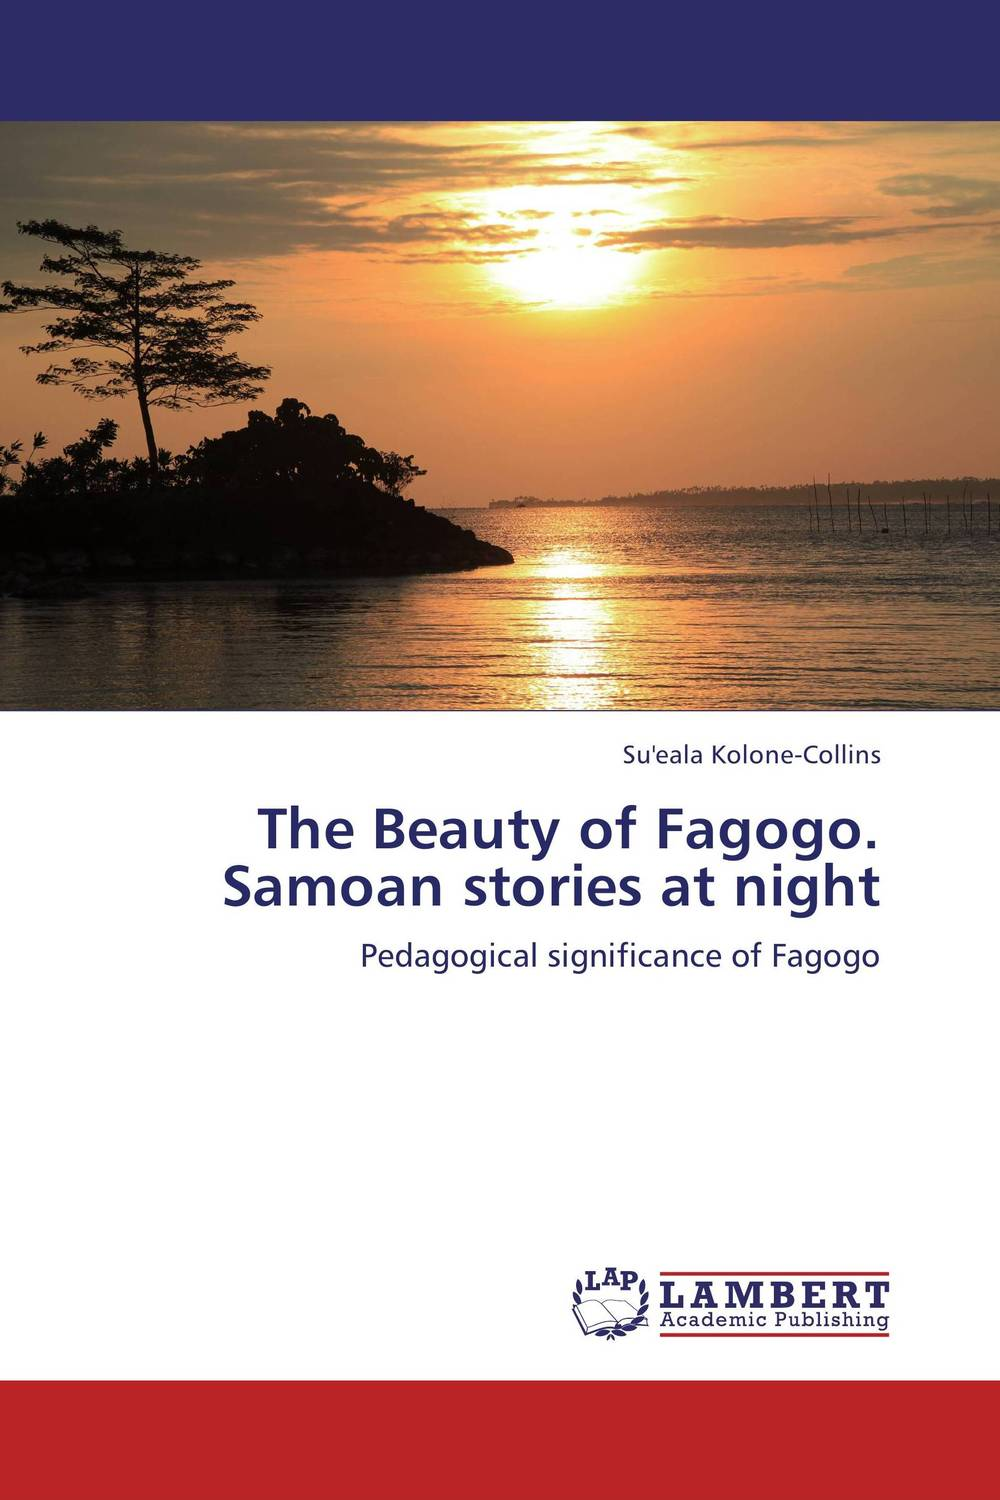 The Beauty of Fagogo. Samoan stories at night the quality of accreditation standards for distance learning